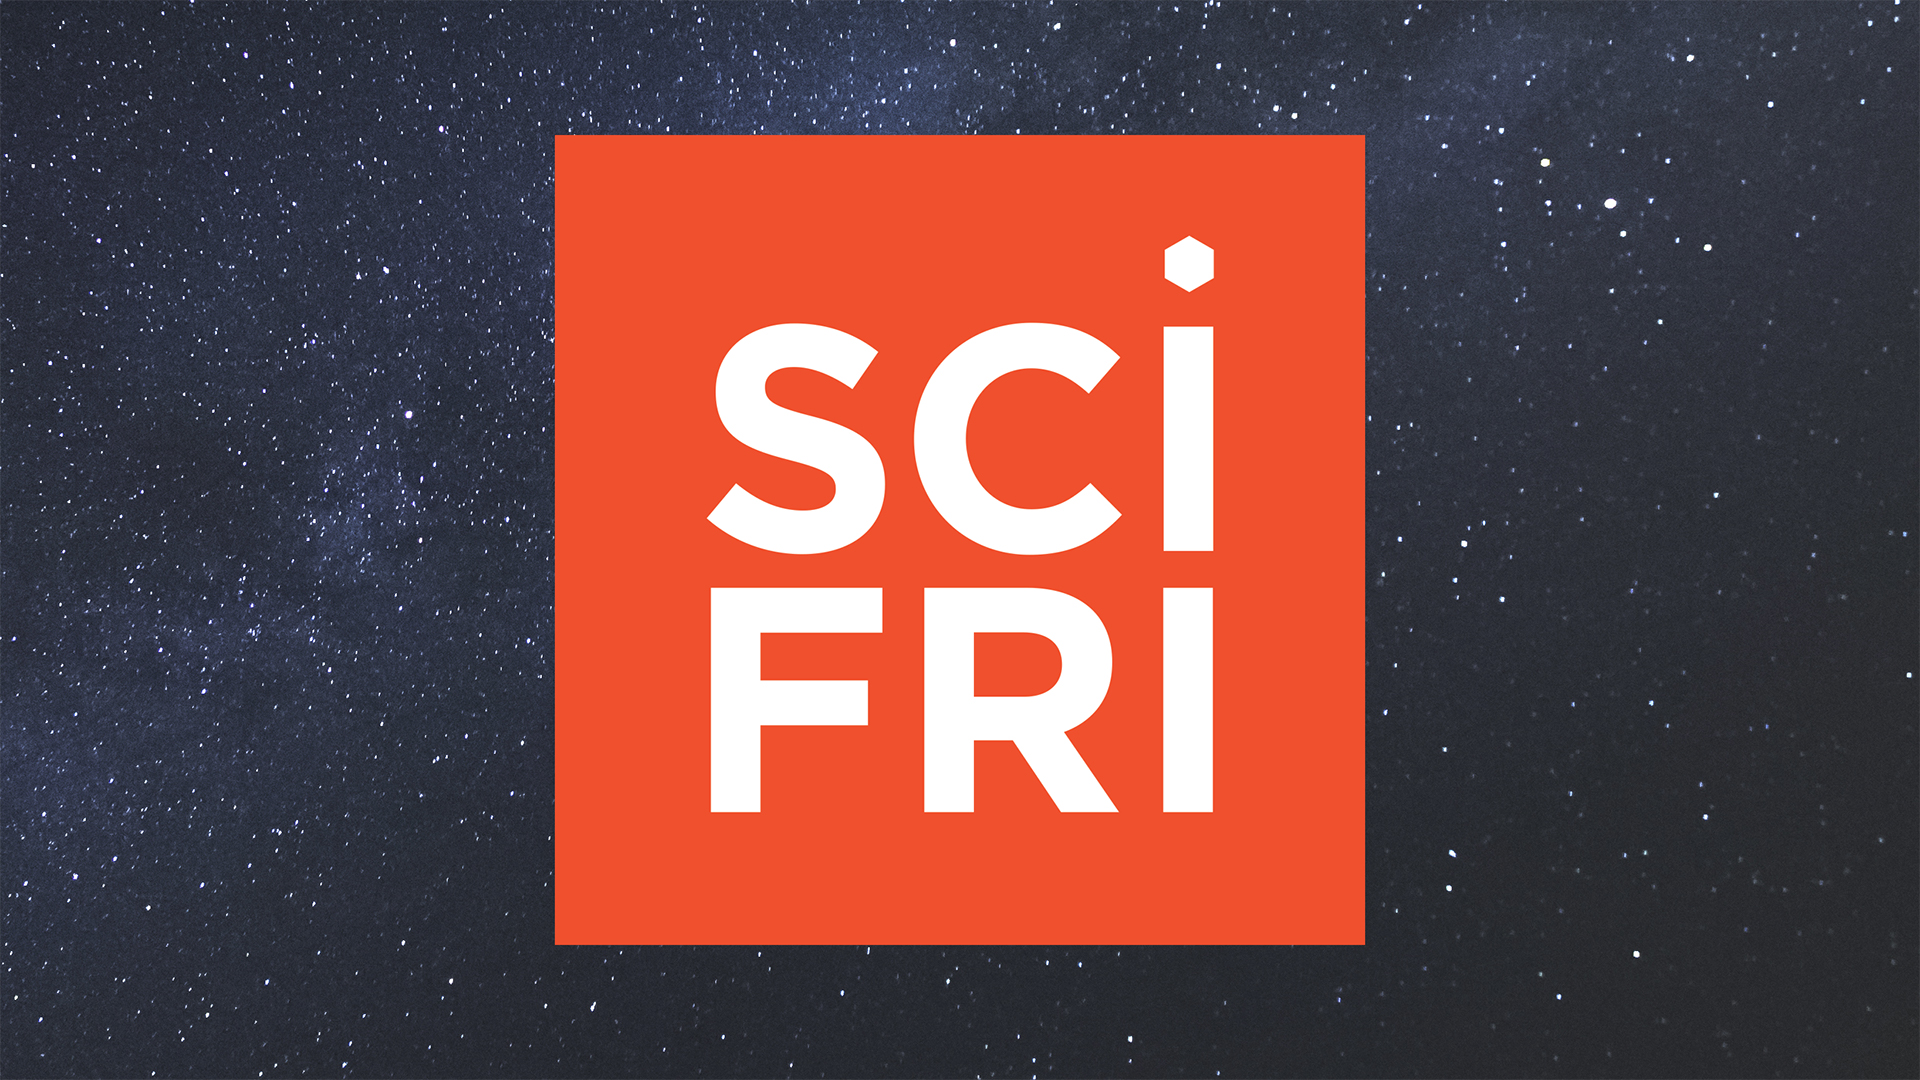 Learn More about Science Friday